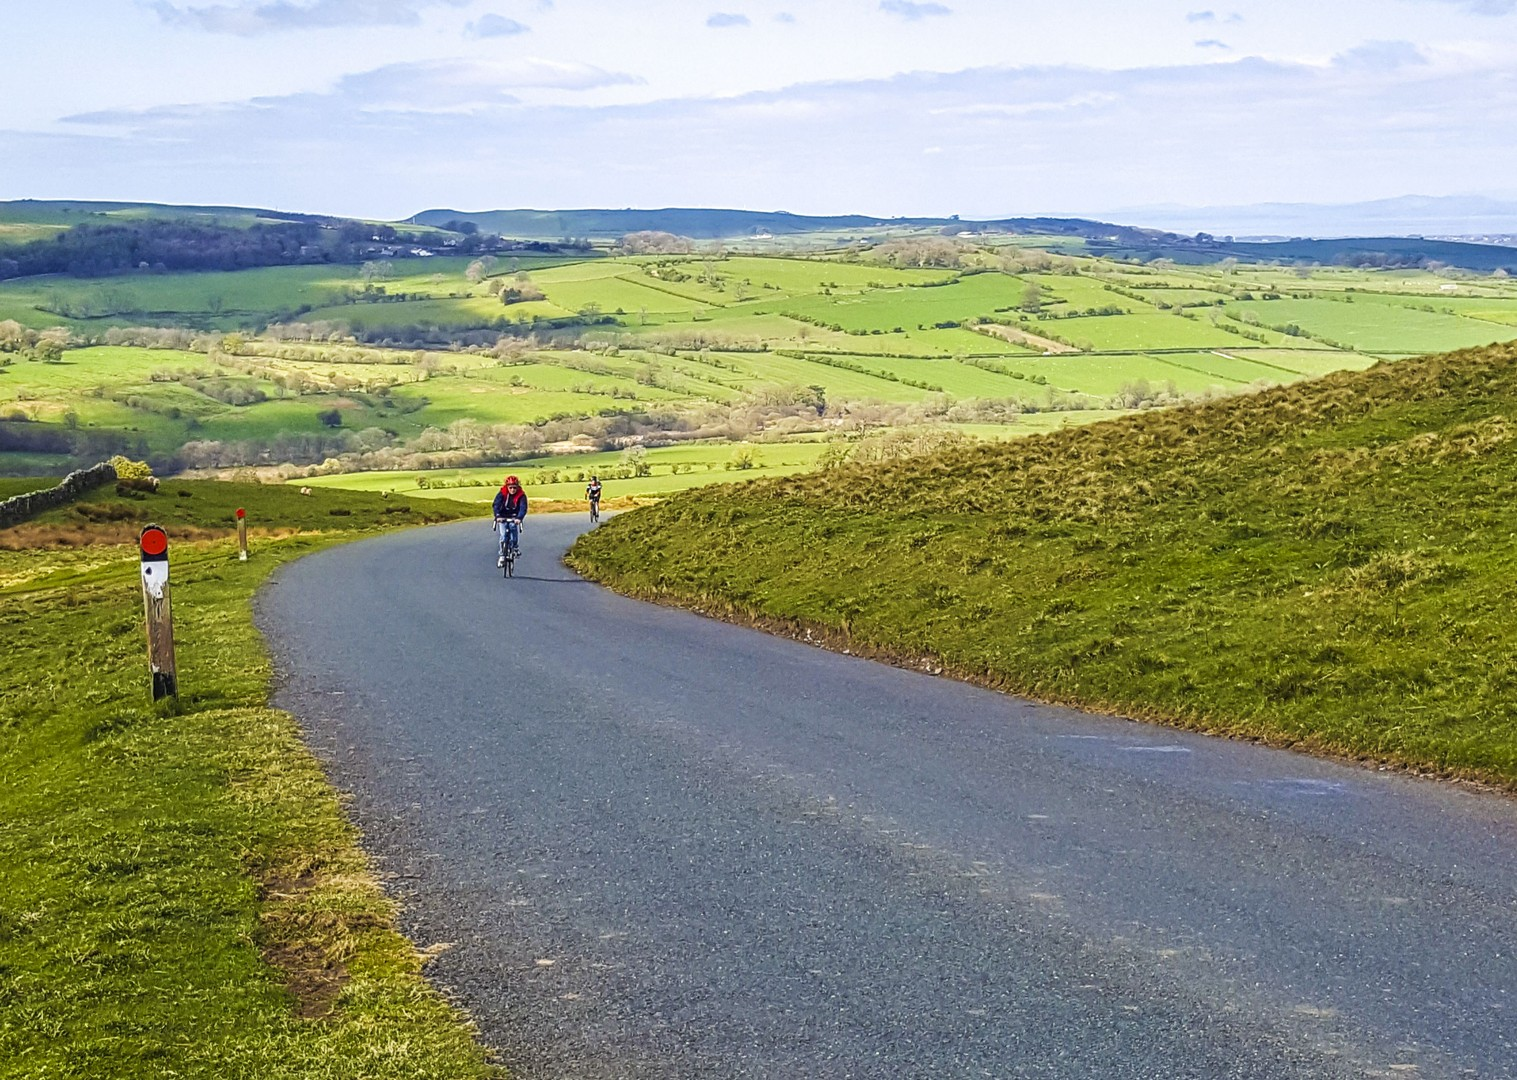 20170422_113938-2.jpg - UK - Lake District - Derwent Water - Guided Leisure Cycling Holiday - Leisure Cycling